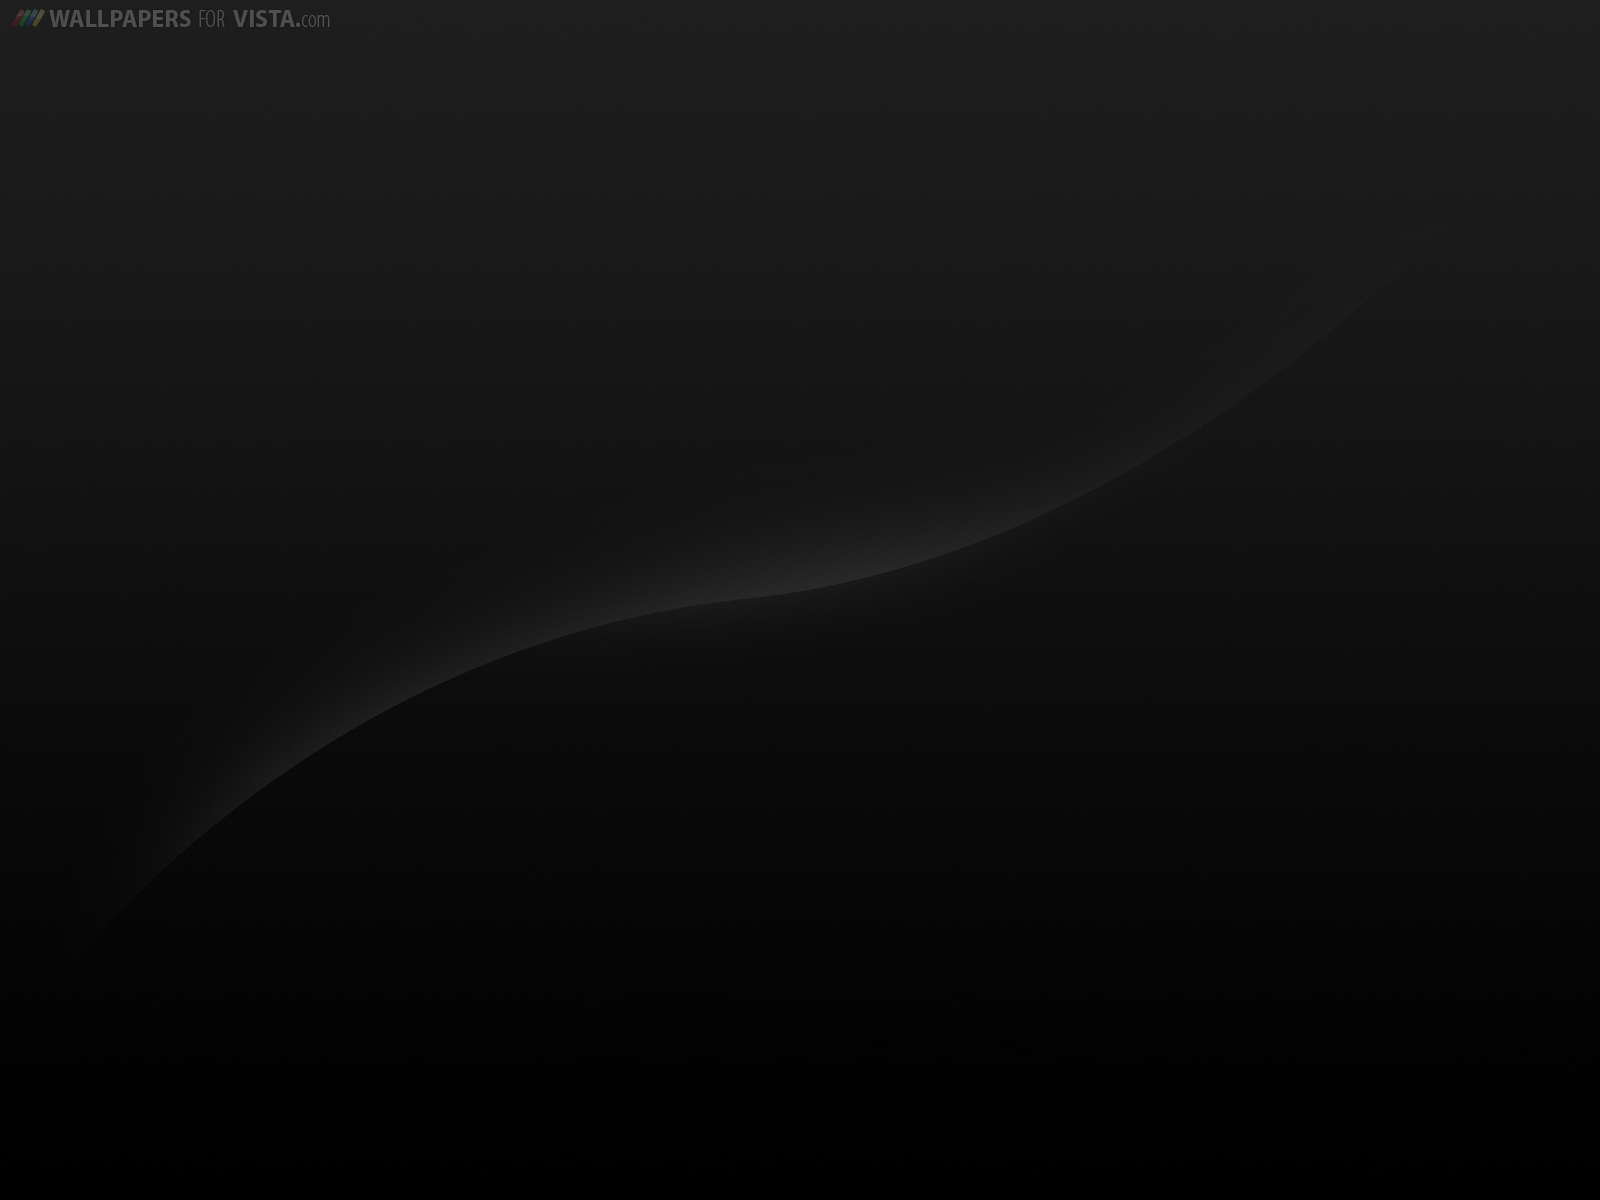 cool computer black wallpapers 23 desktop background